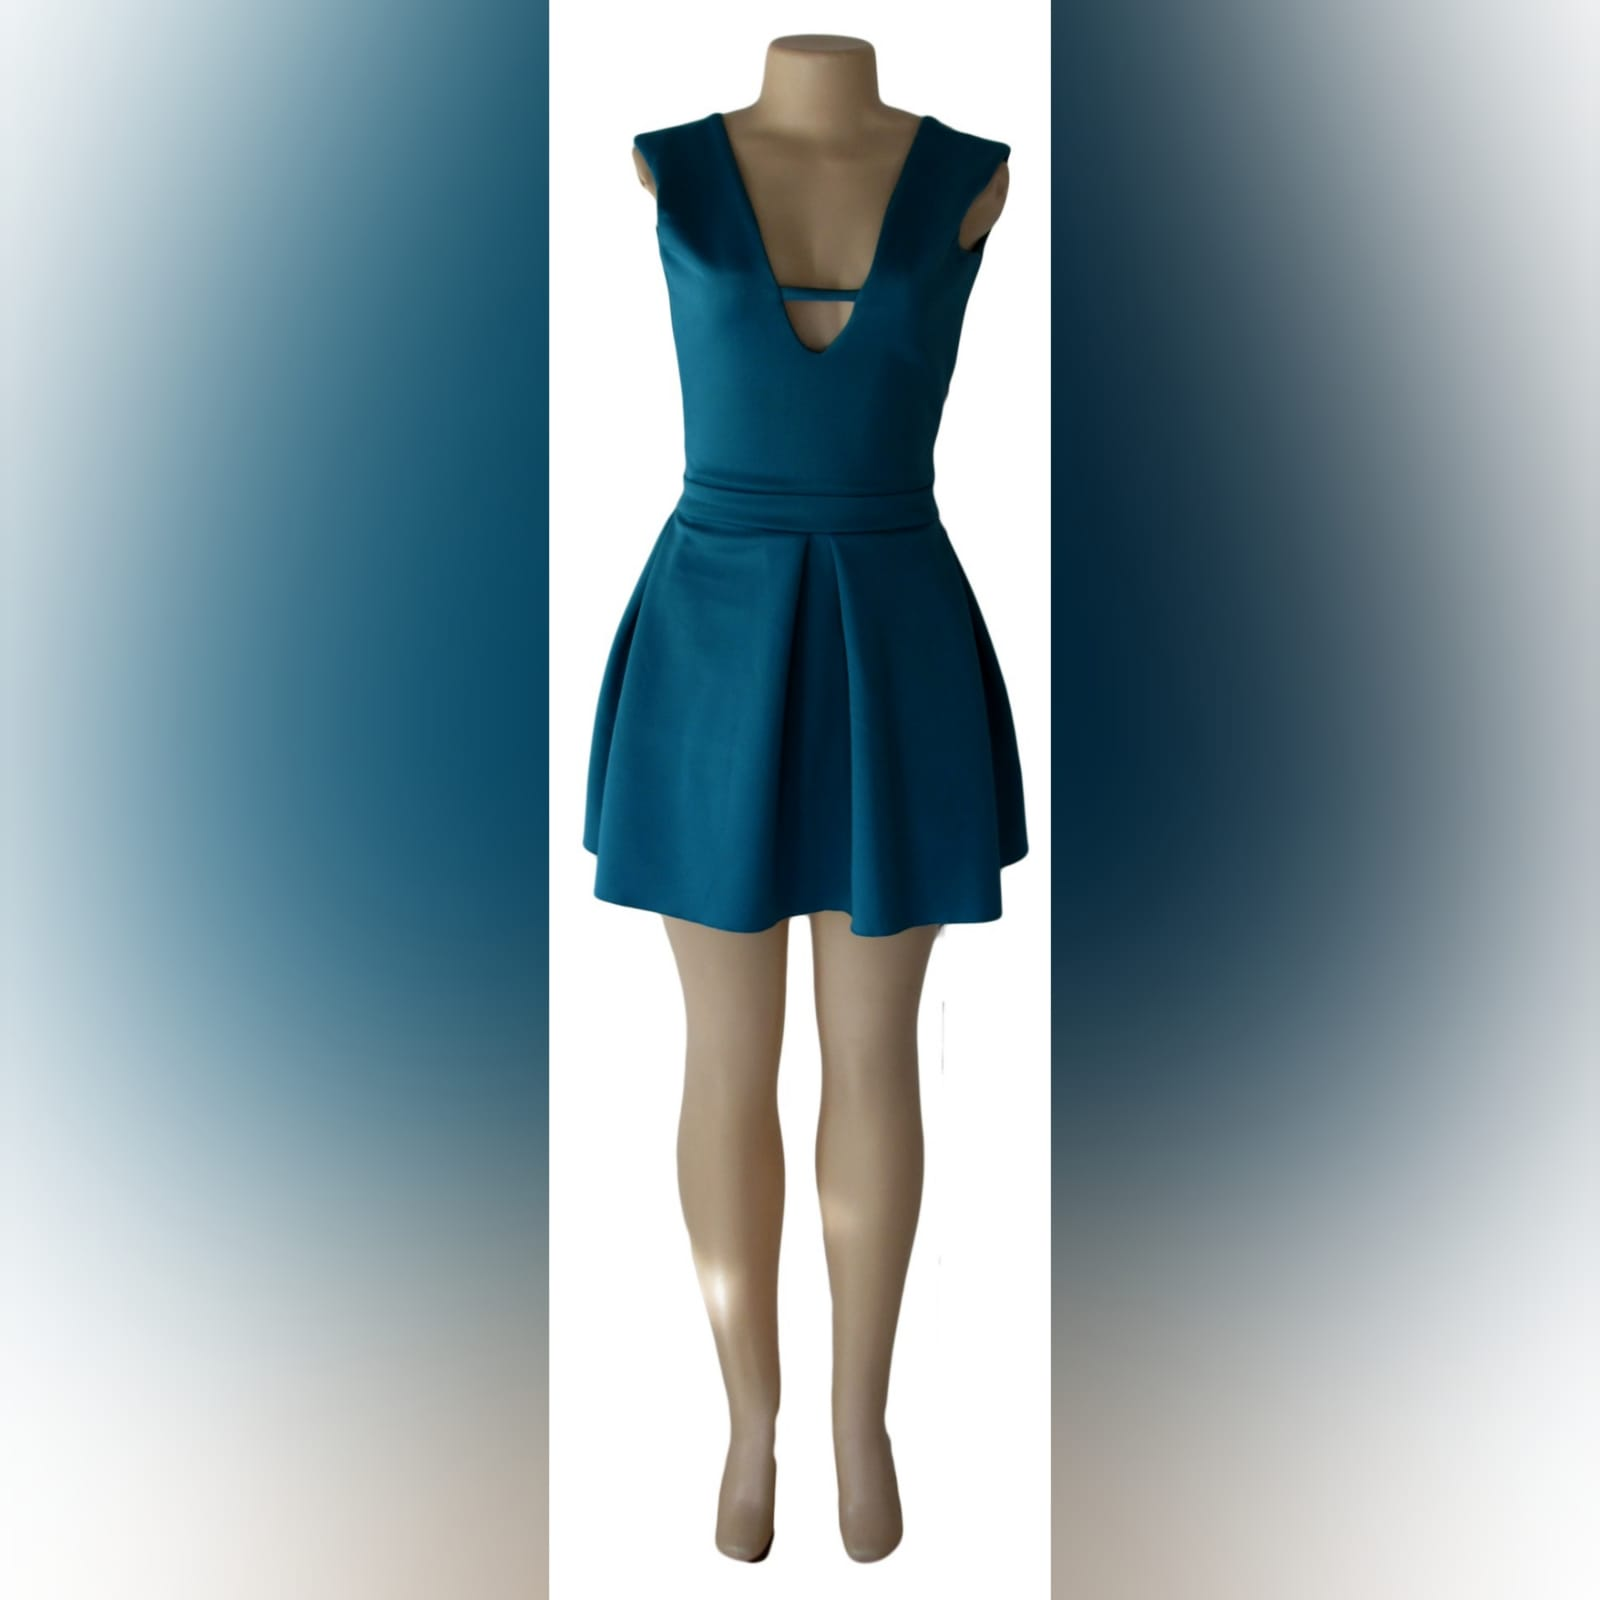 Turquoise green short smart casual dress 1 turquoise green short smart casual dress with a v neckline in front and a low v open back, with a waistband, and wide pleats on the bottom.